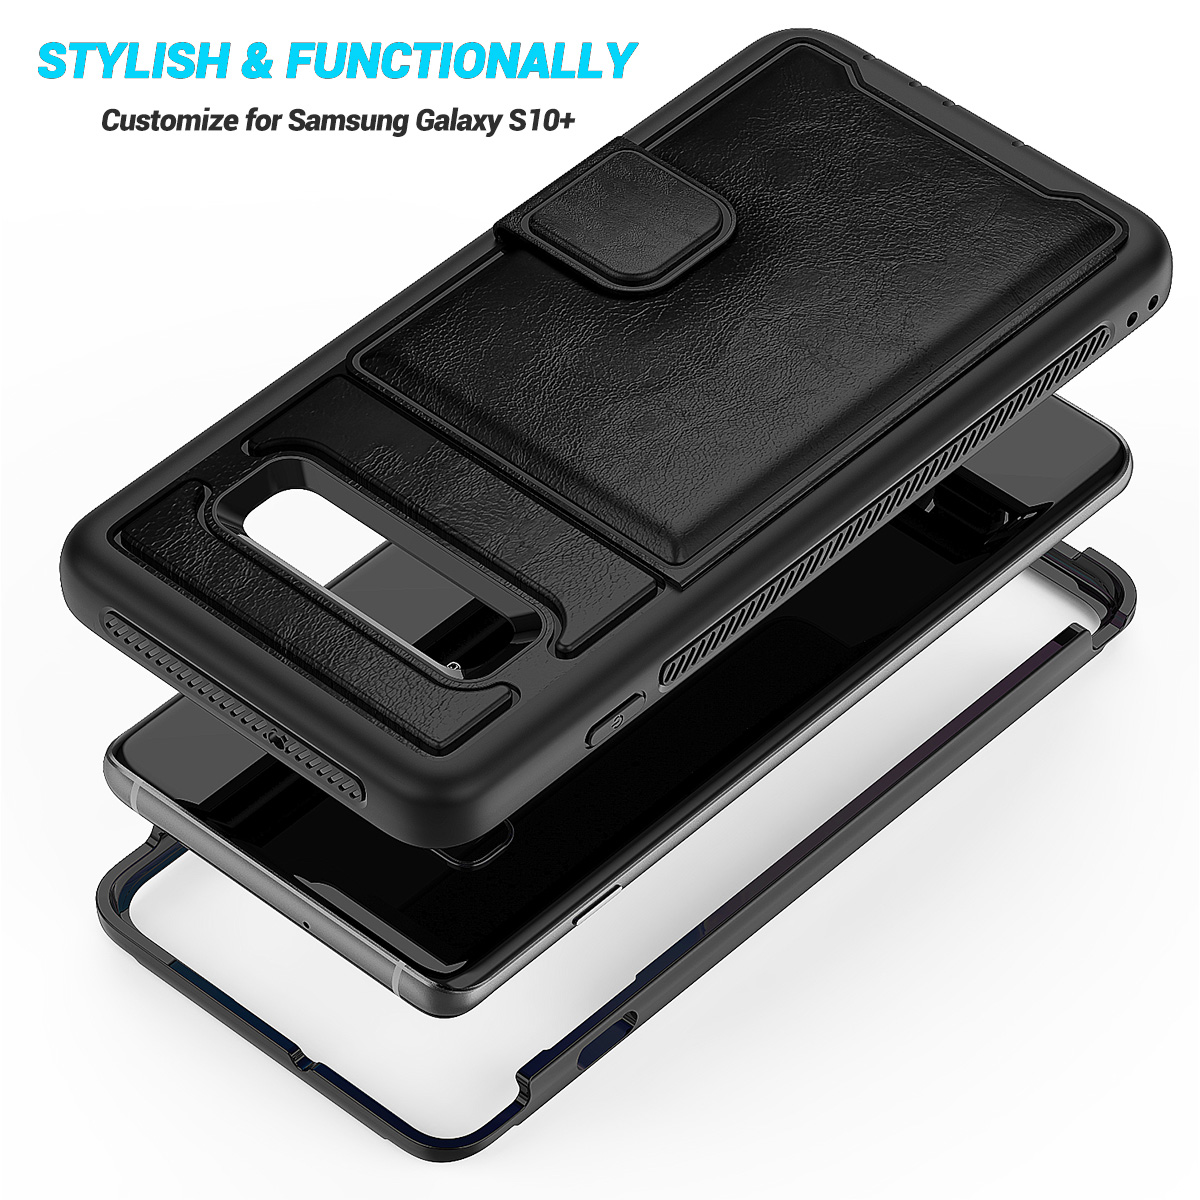 PU-Leather-Credit-Card-Holder-Phone-Case-For-Samsung-Galaxy-S10-Plus-S10e-2019 thumbnail 16